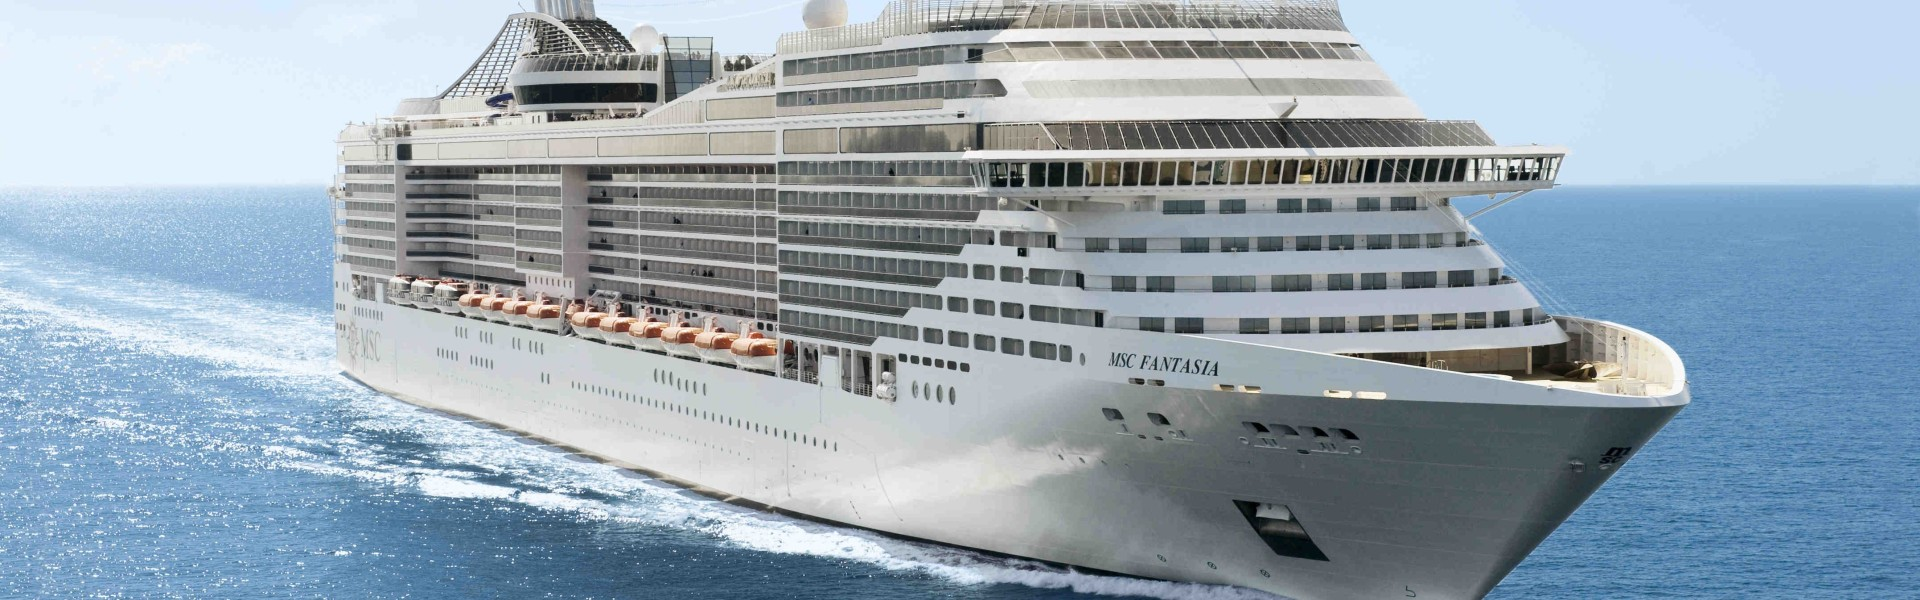 MSC Fantasia © MSC Crociere